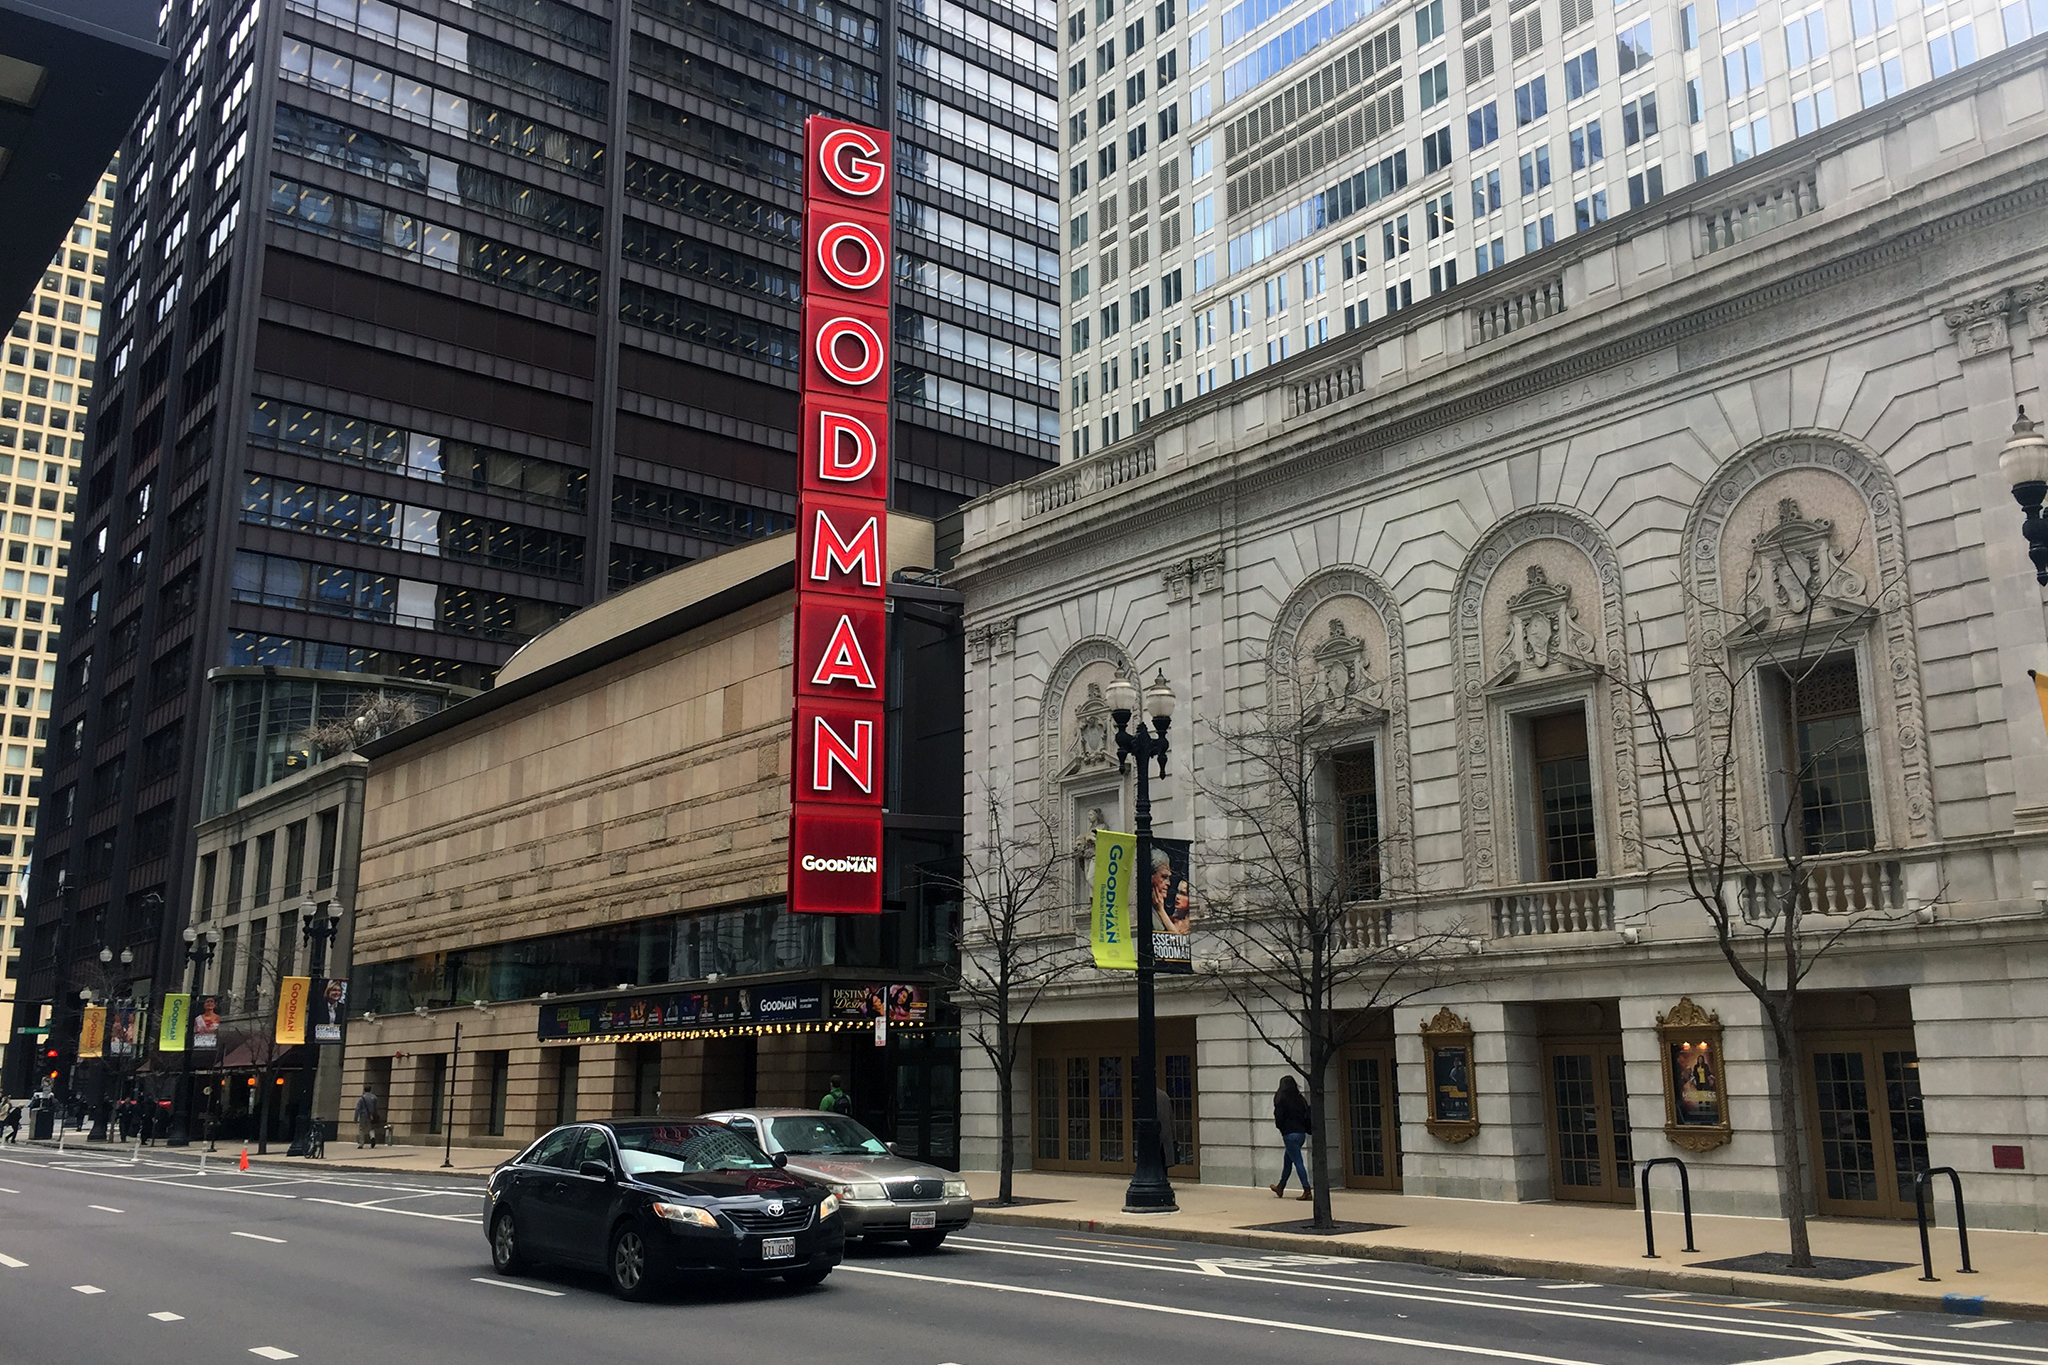 Goodman Theatre's next season: Shakespeare, 'Sweat' and 'The Music Man'